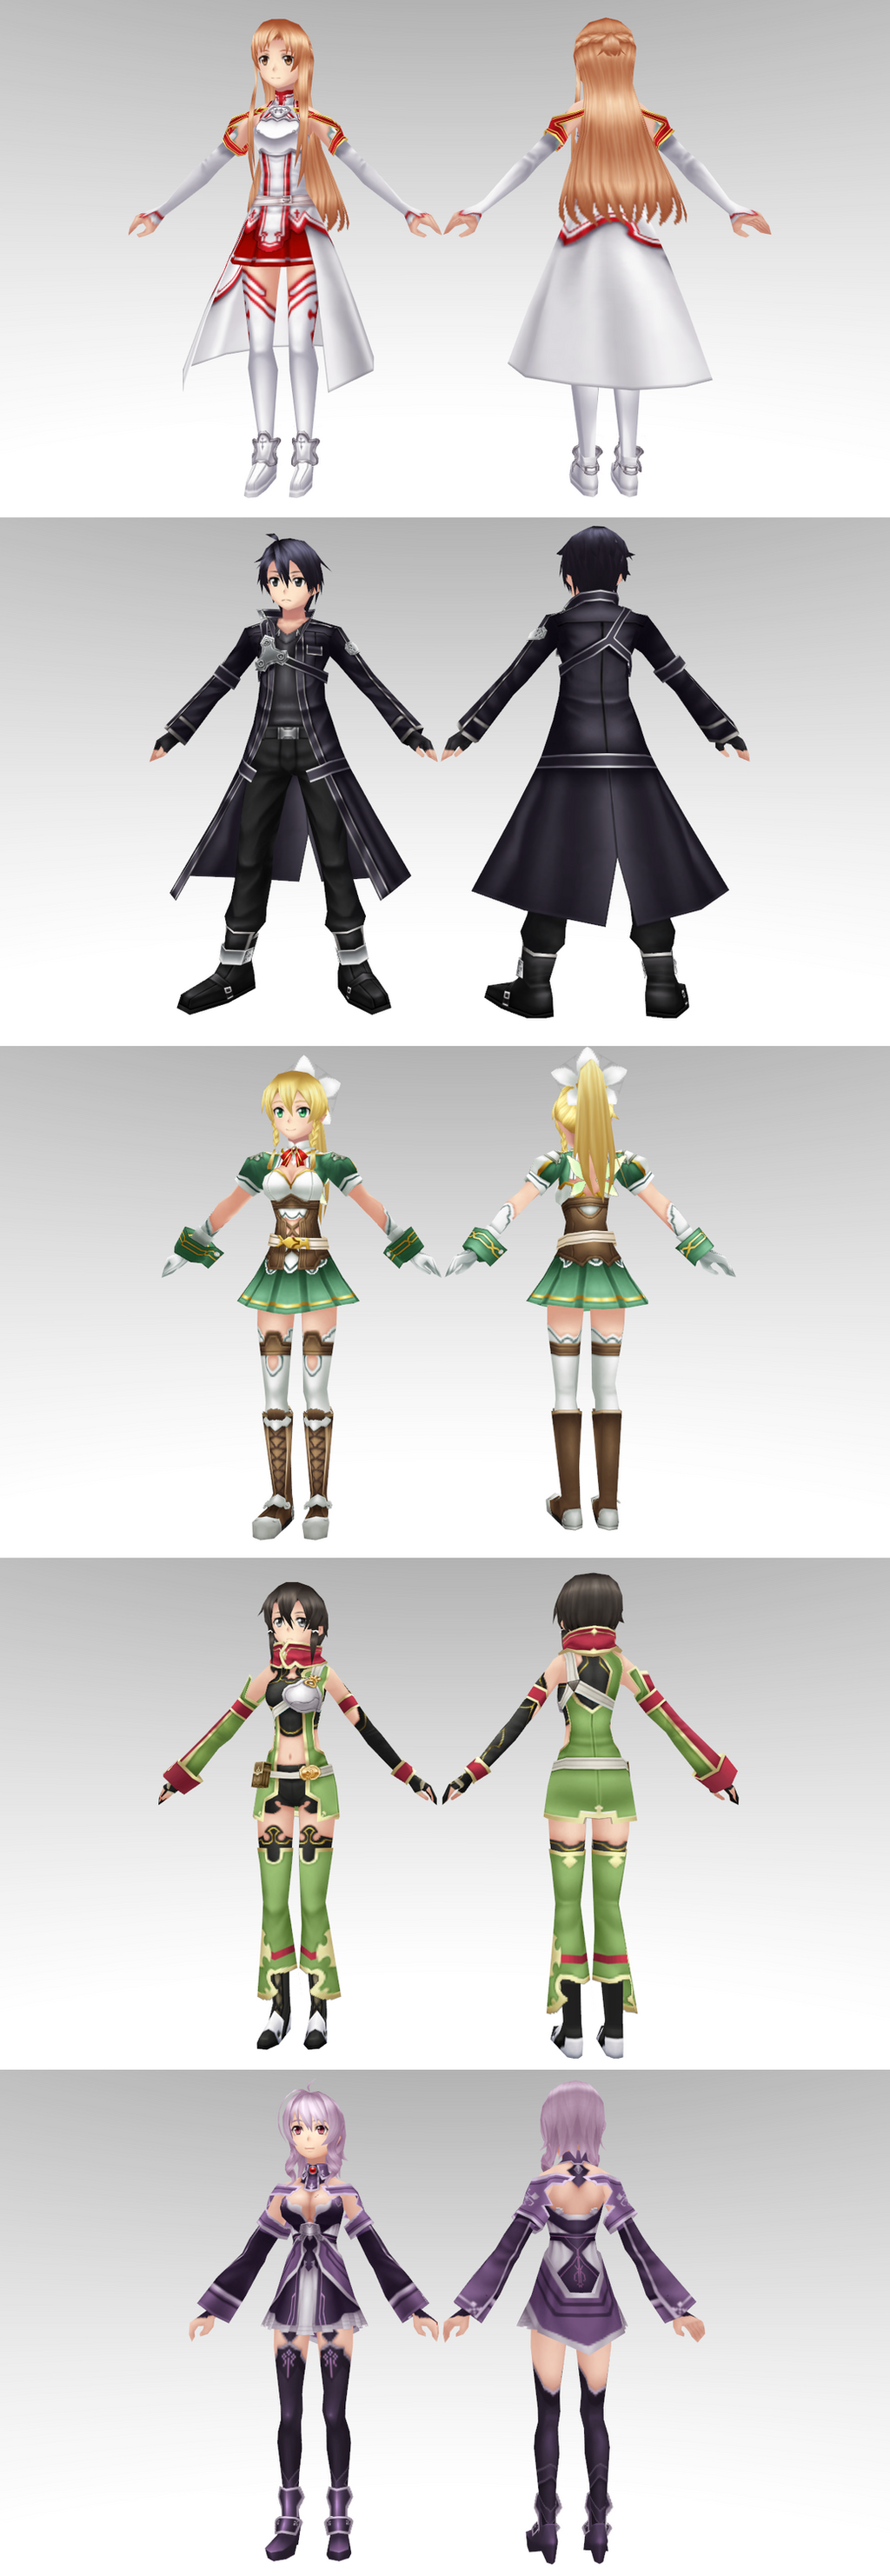 Sword Art Online Model Pack 2 By Chocokobato On Deviantart